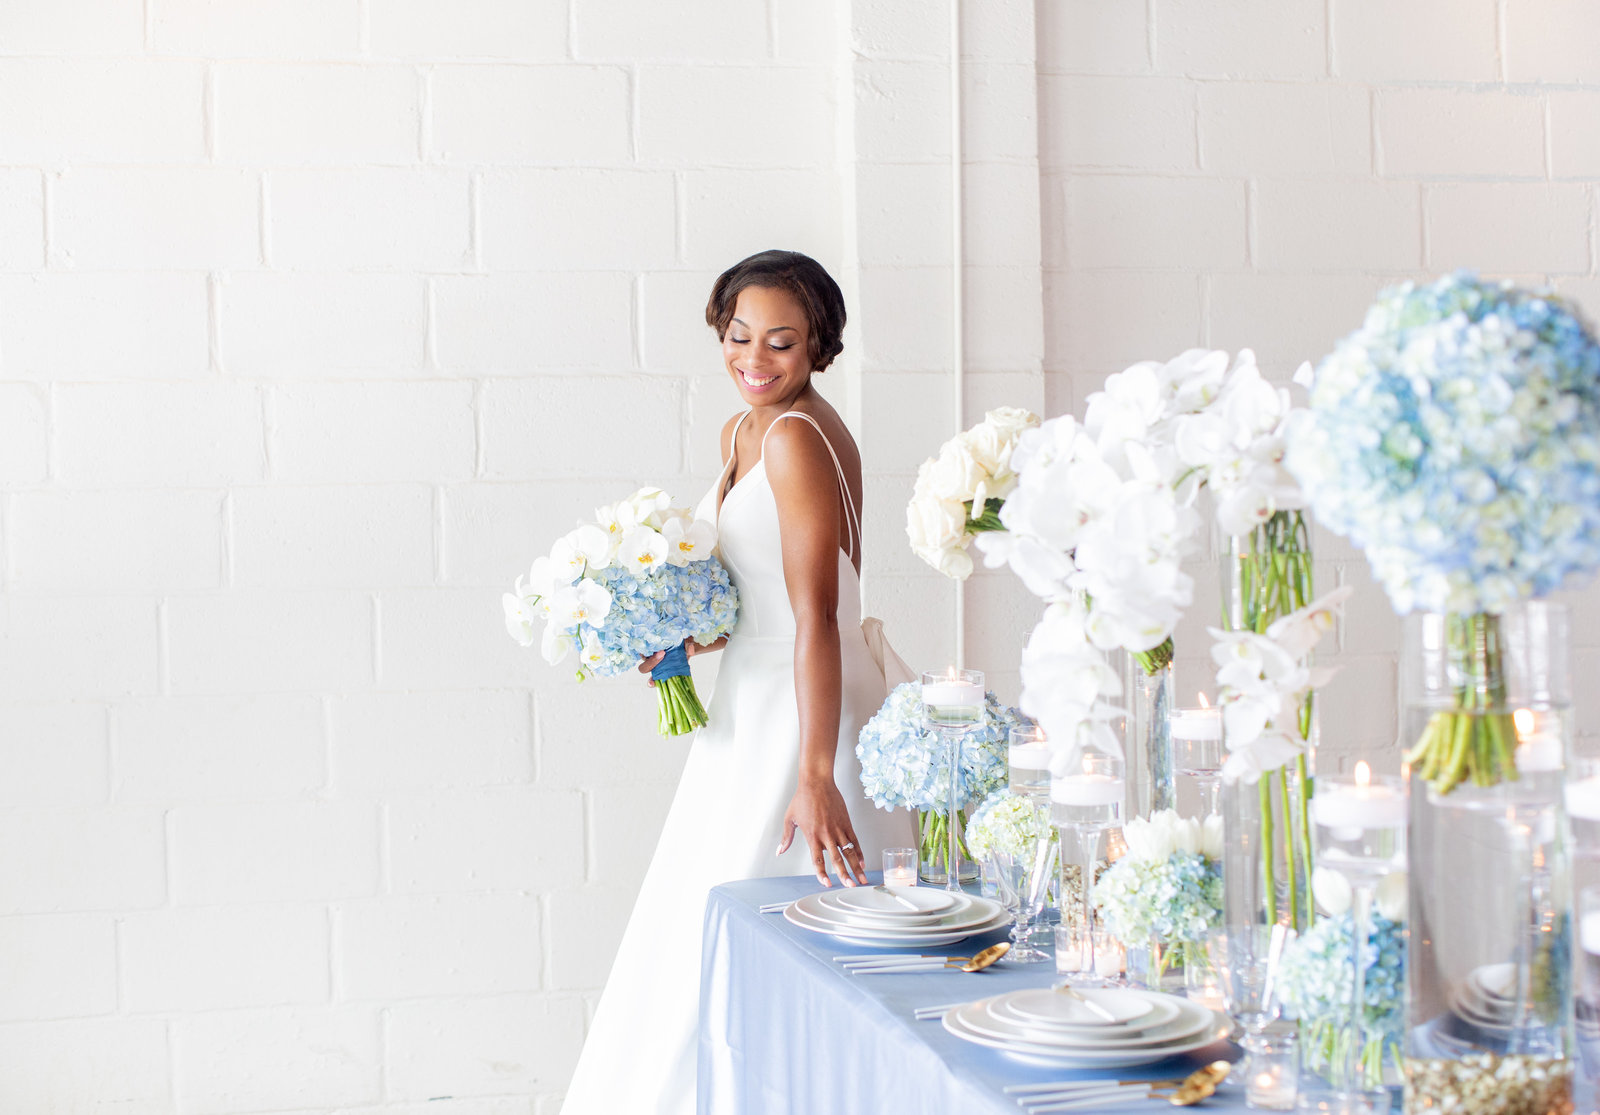 Elegant modern wedding with white and blue wedding decor